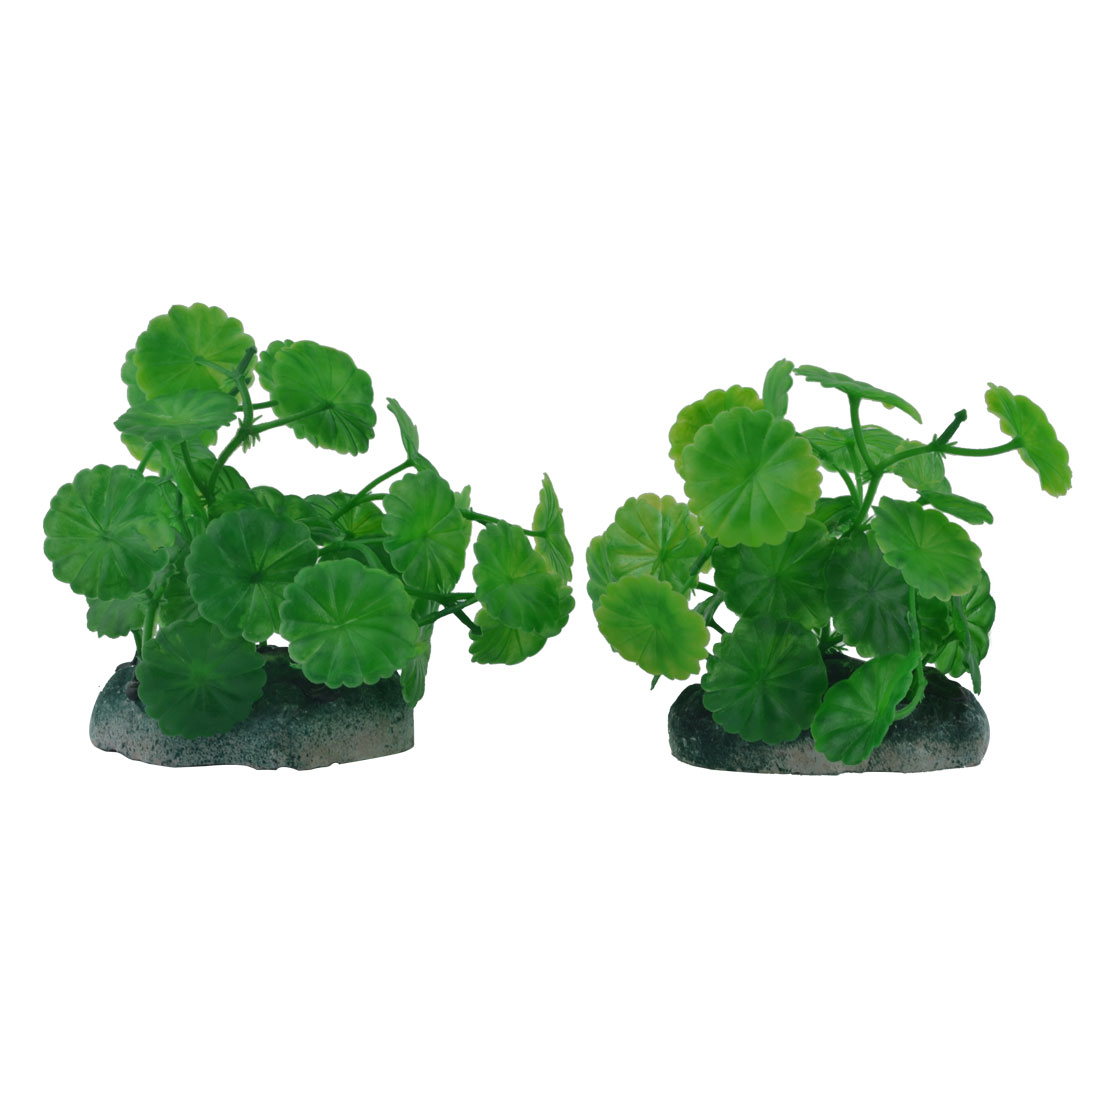 Aquarium Fish Bowl Plastic Manmade Simulation Water Plant Grass Decor Ornament Green 2pcs